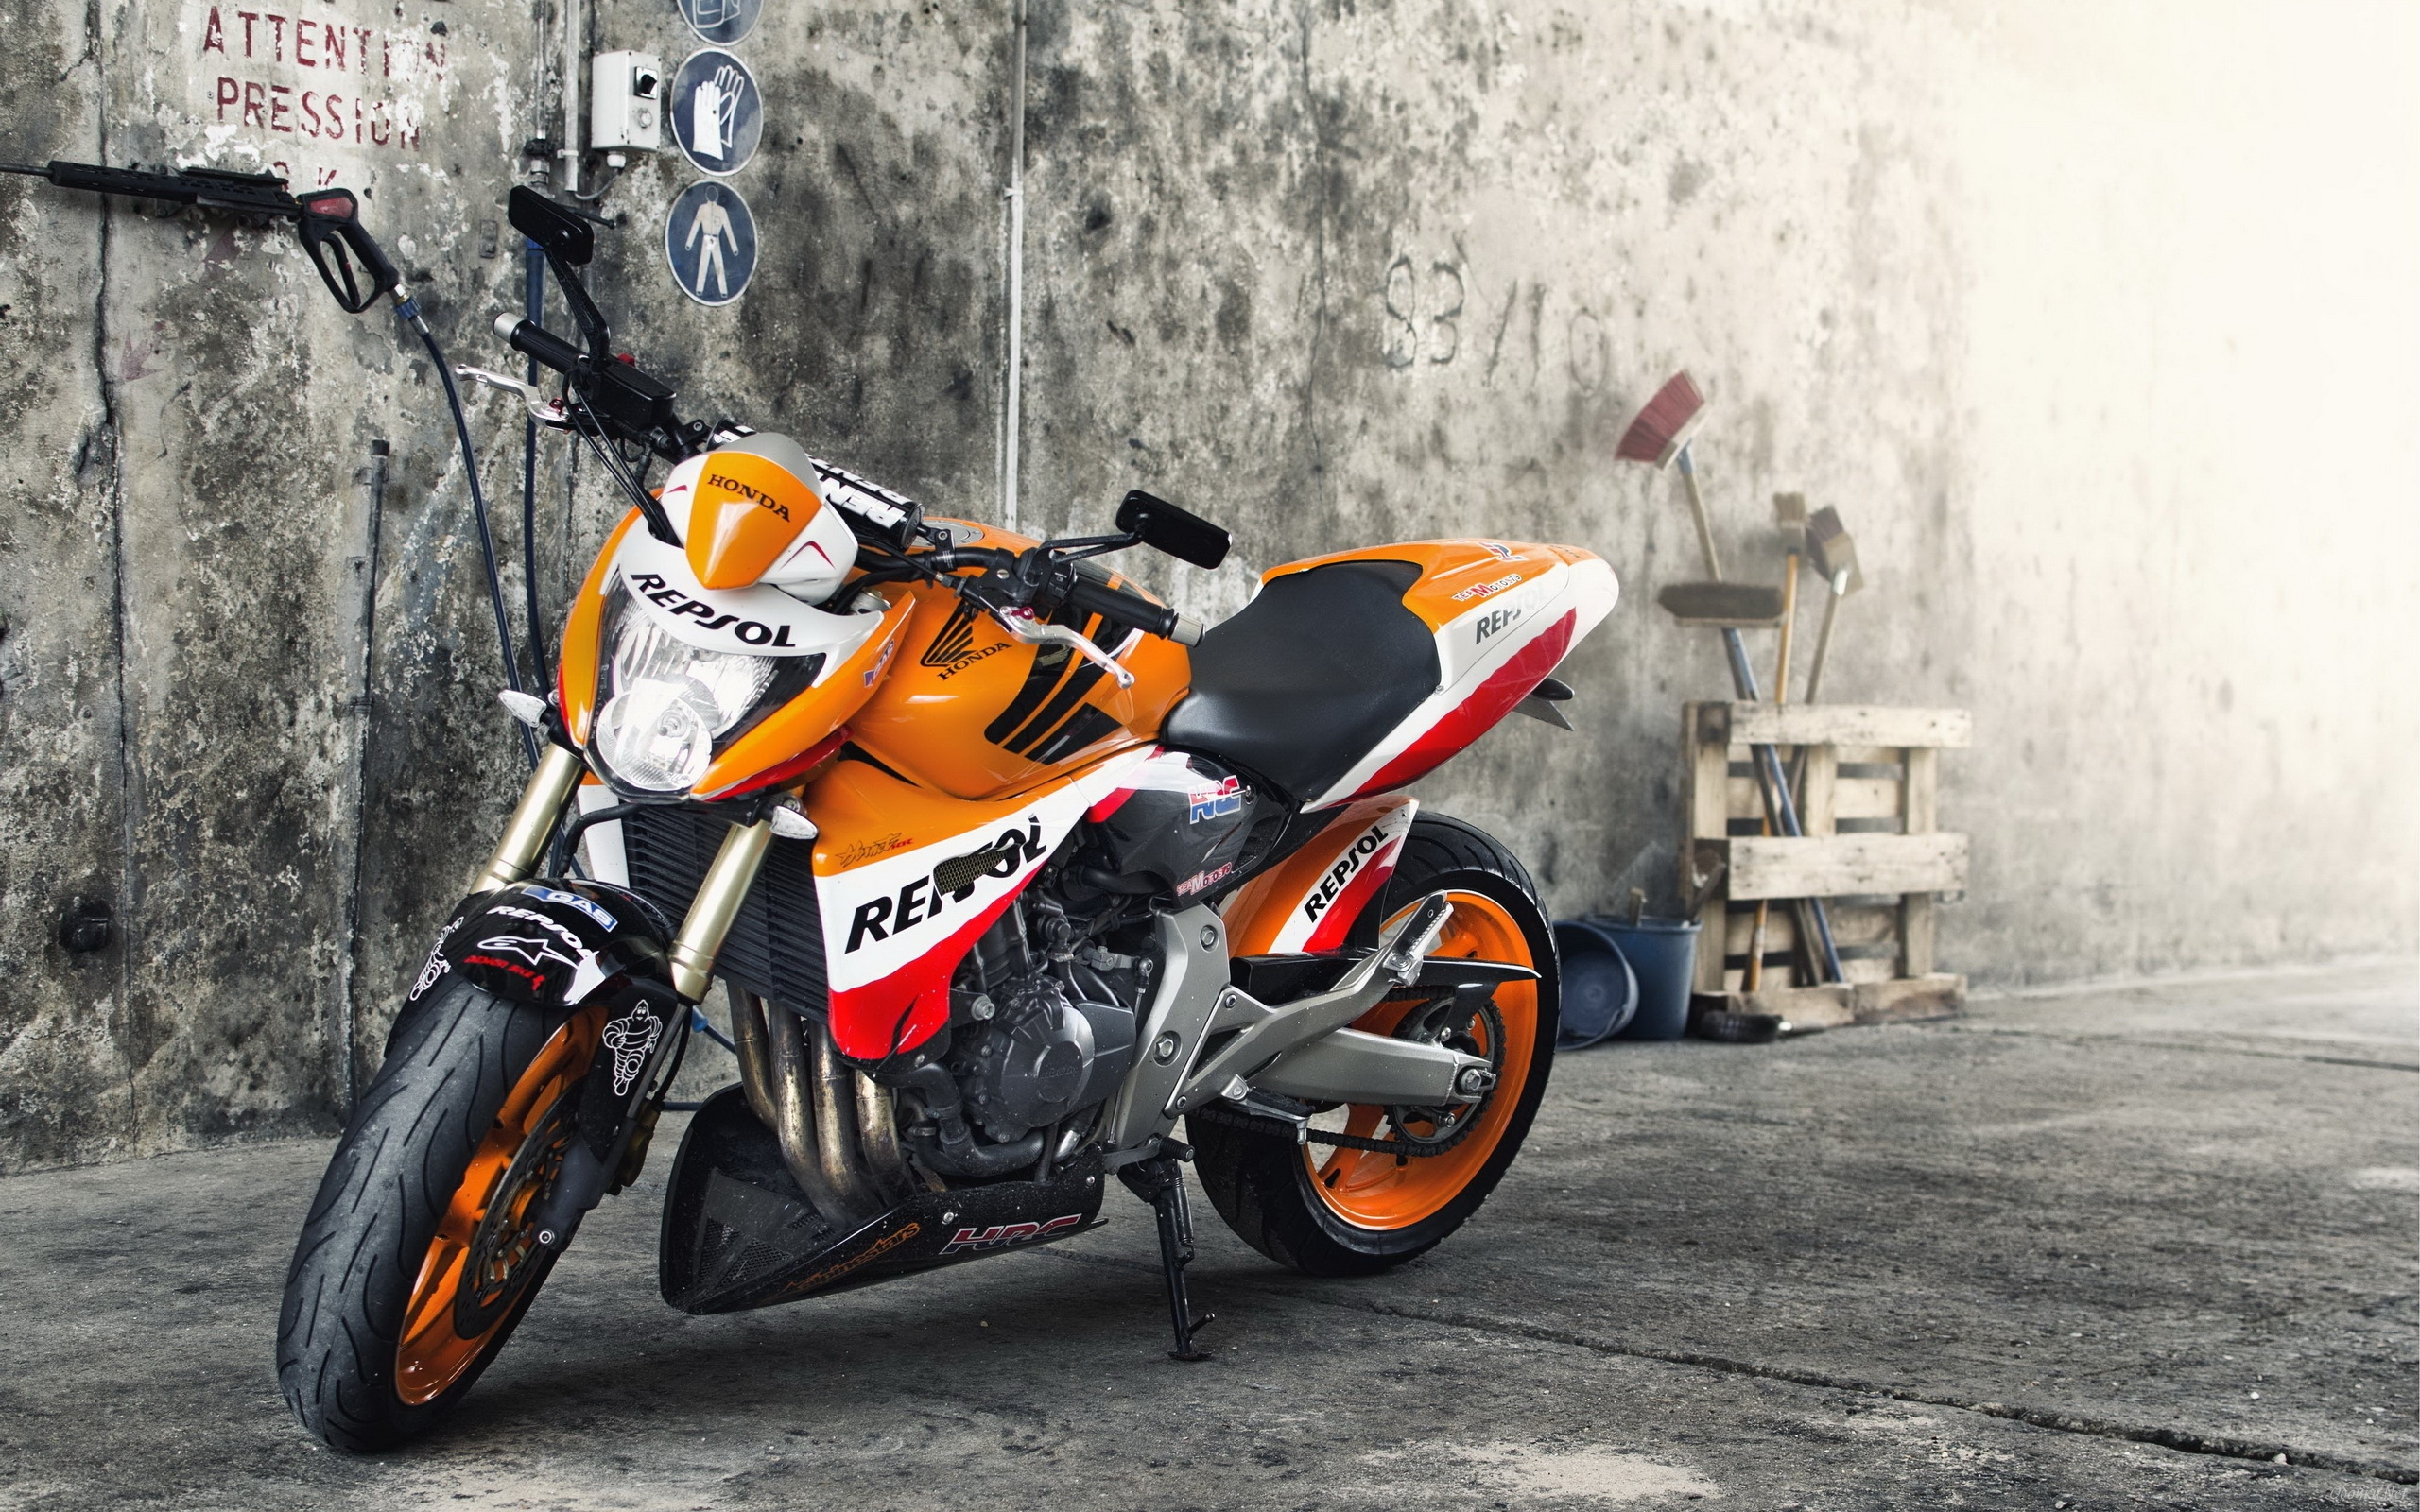 Honda Repsol Wallpaper Motorcycle: Honda Repsol Motorcycle Wallpapers